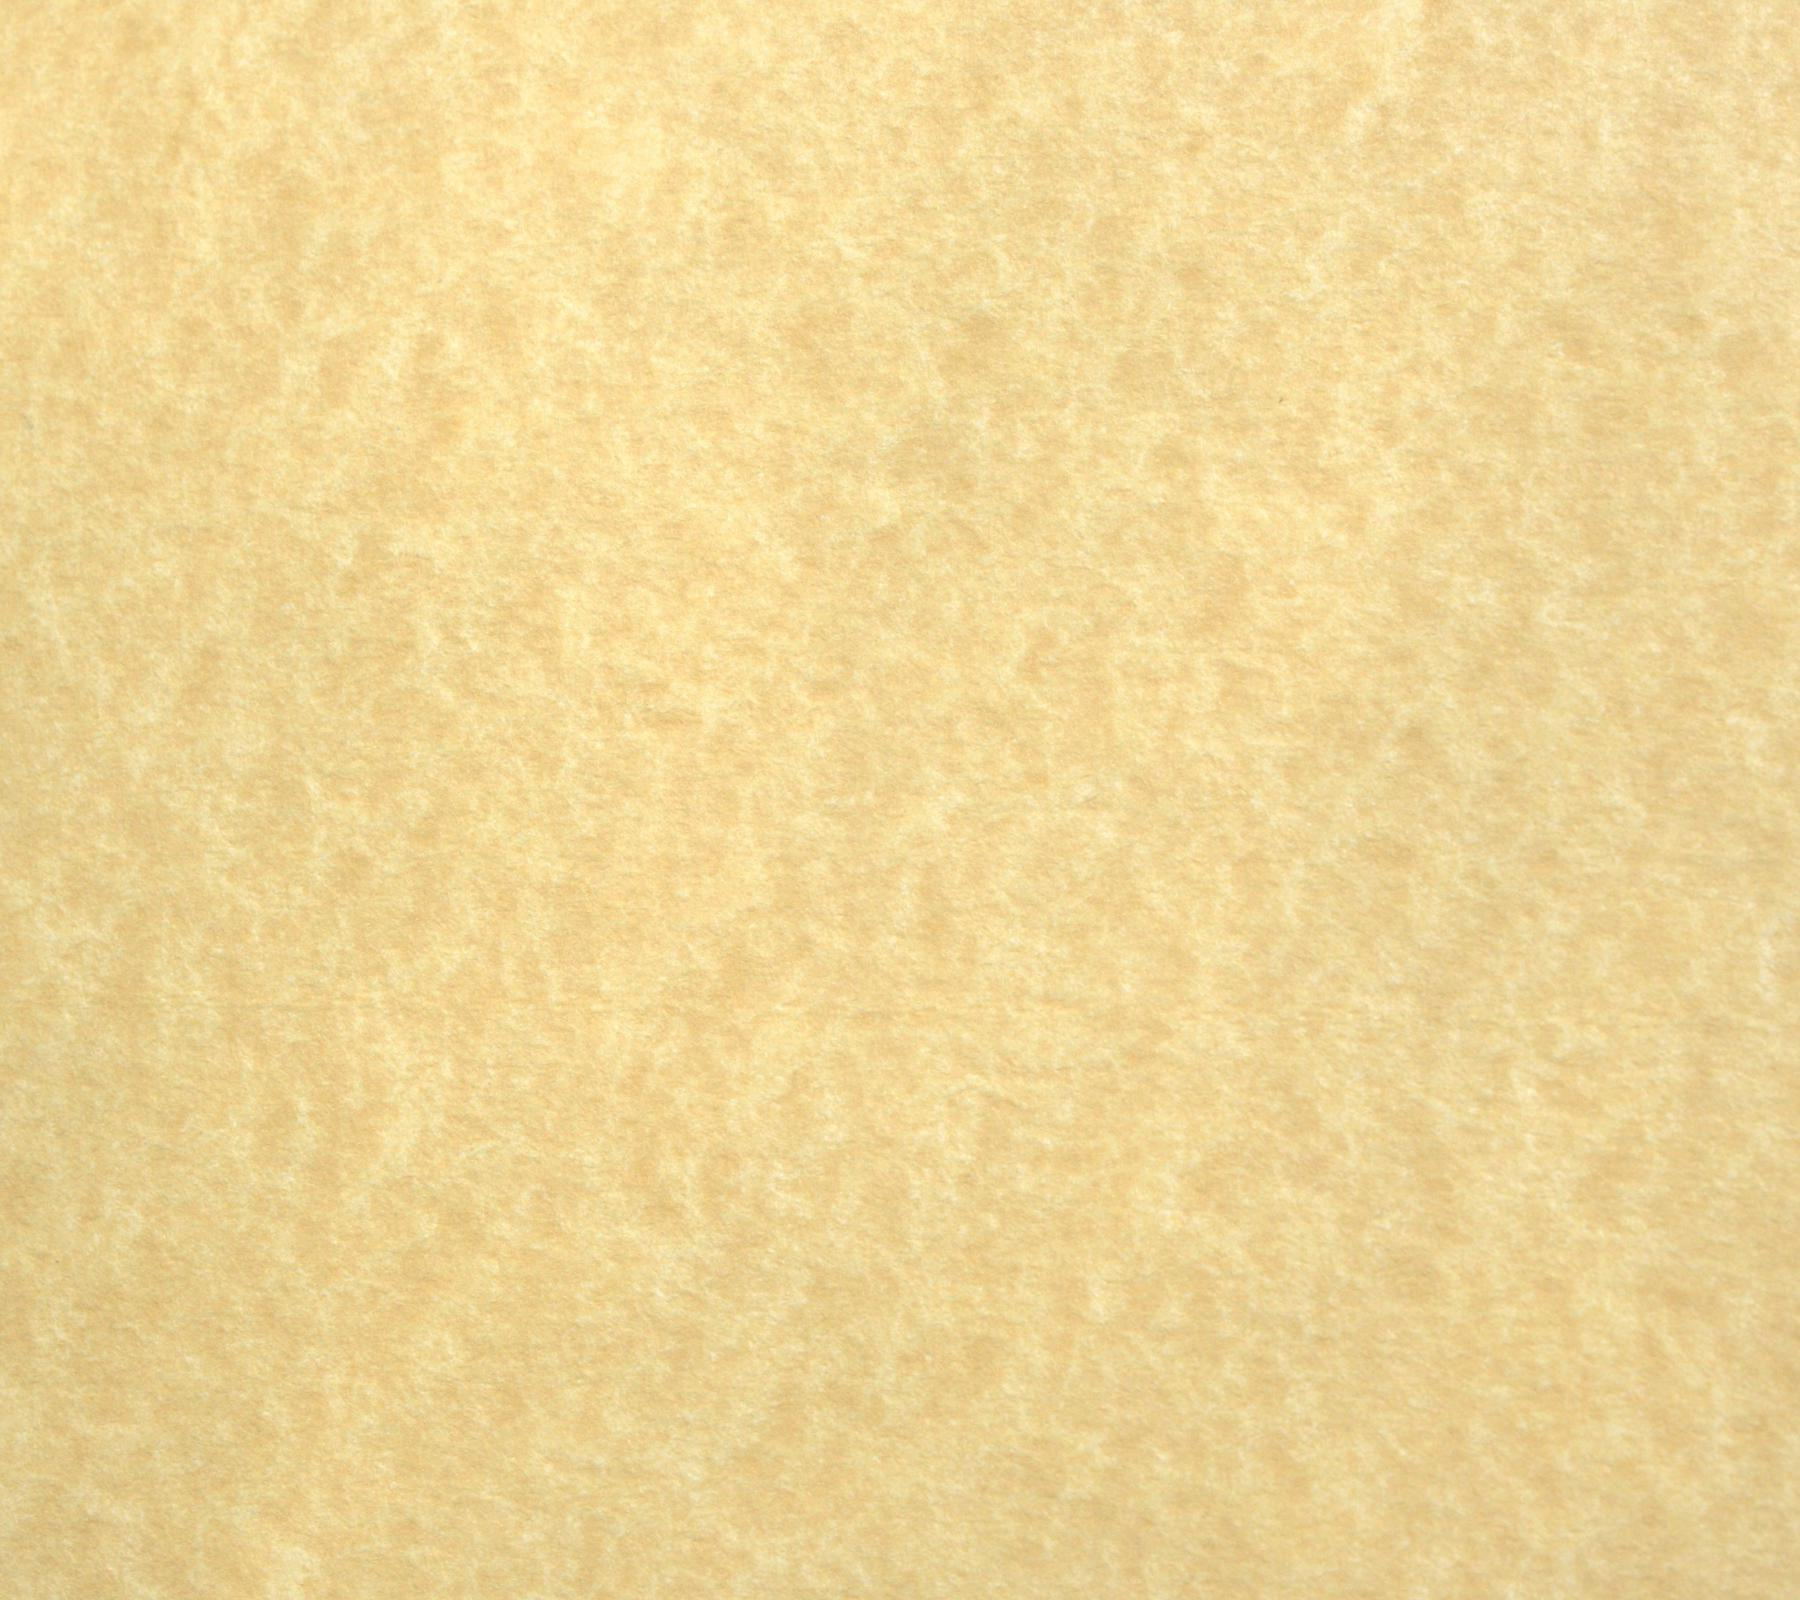 parchment paper background 1800x1600 background image